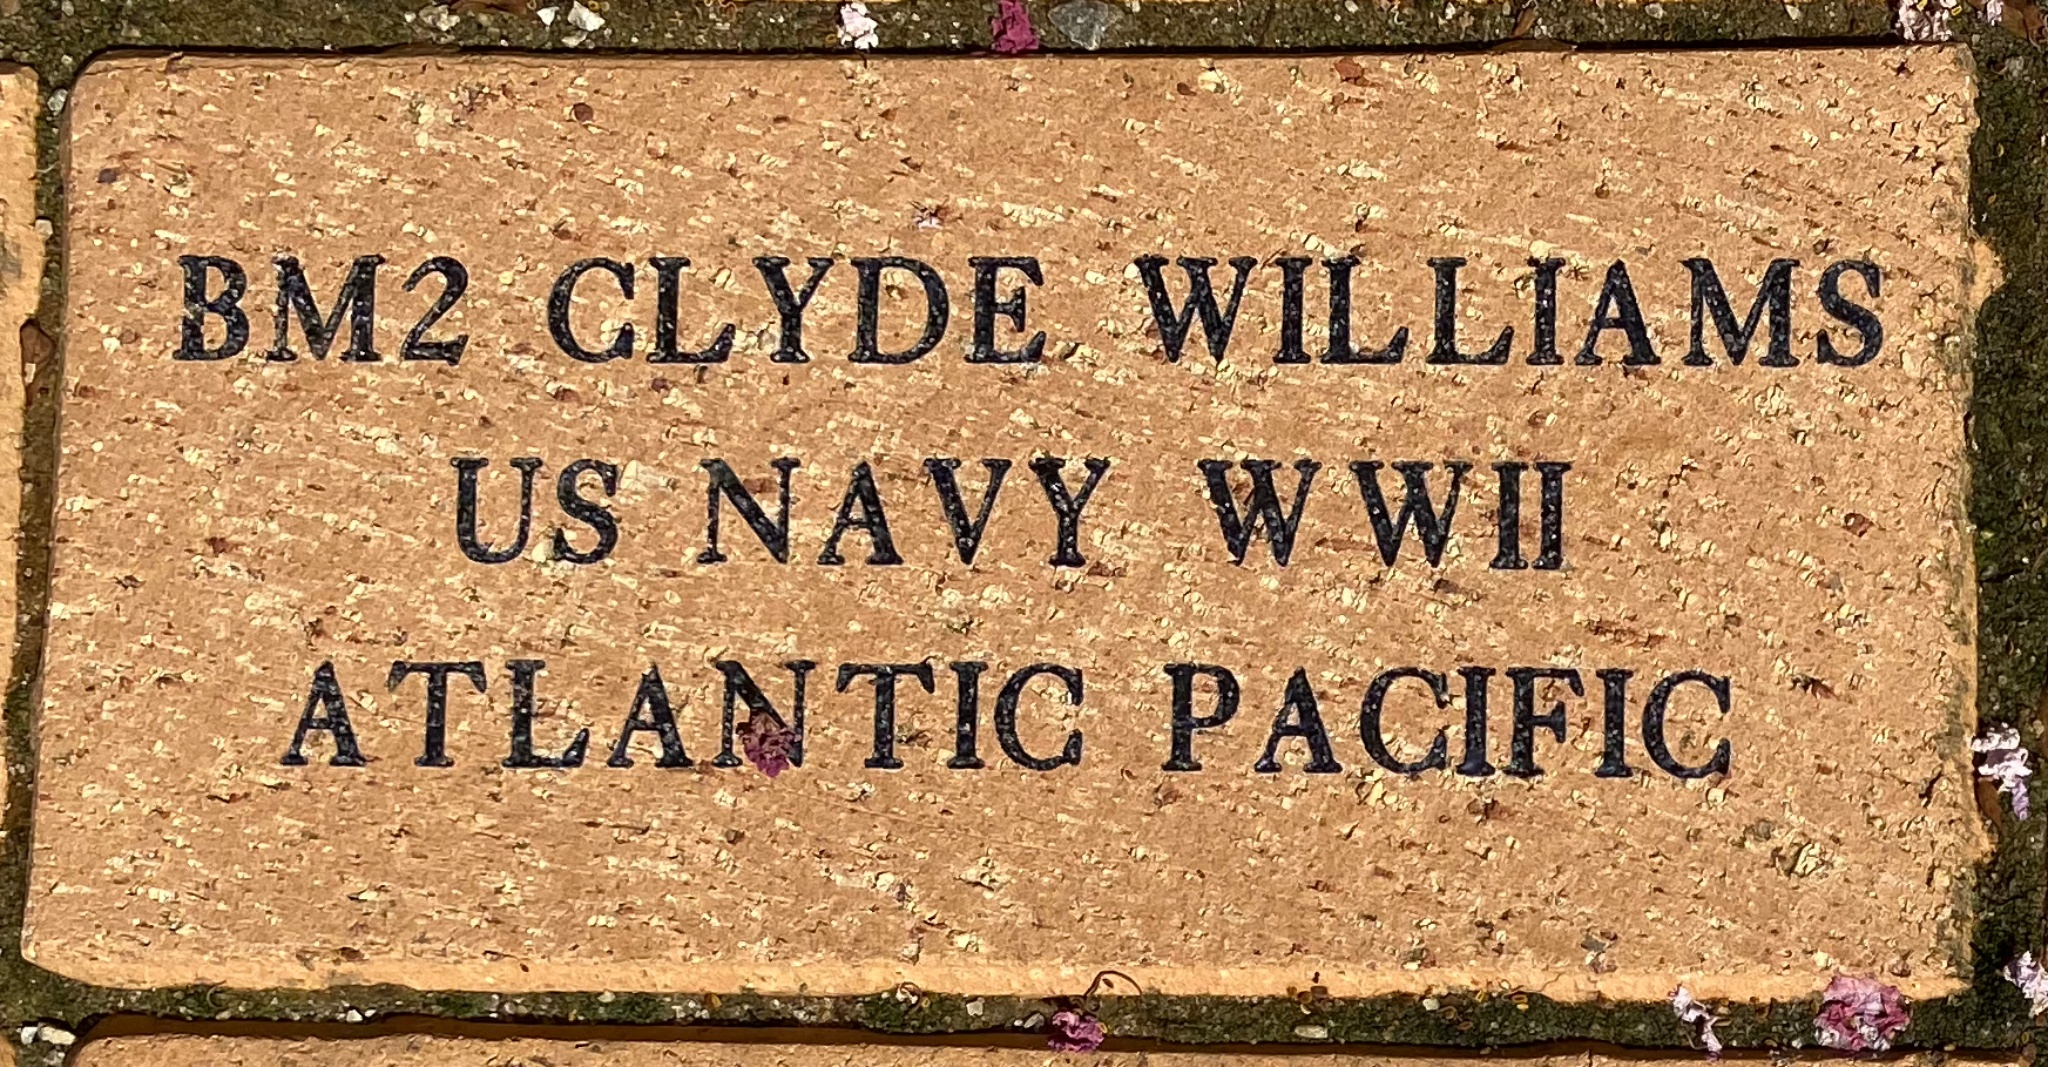 BM2 CLYDE WILLIAMS US NAVY WWII ATLANTIC PACIFIC